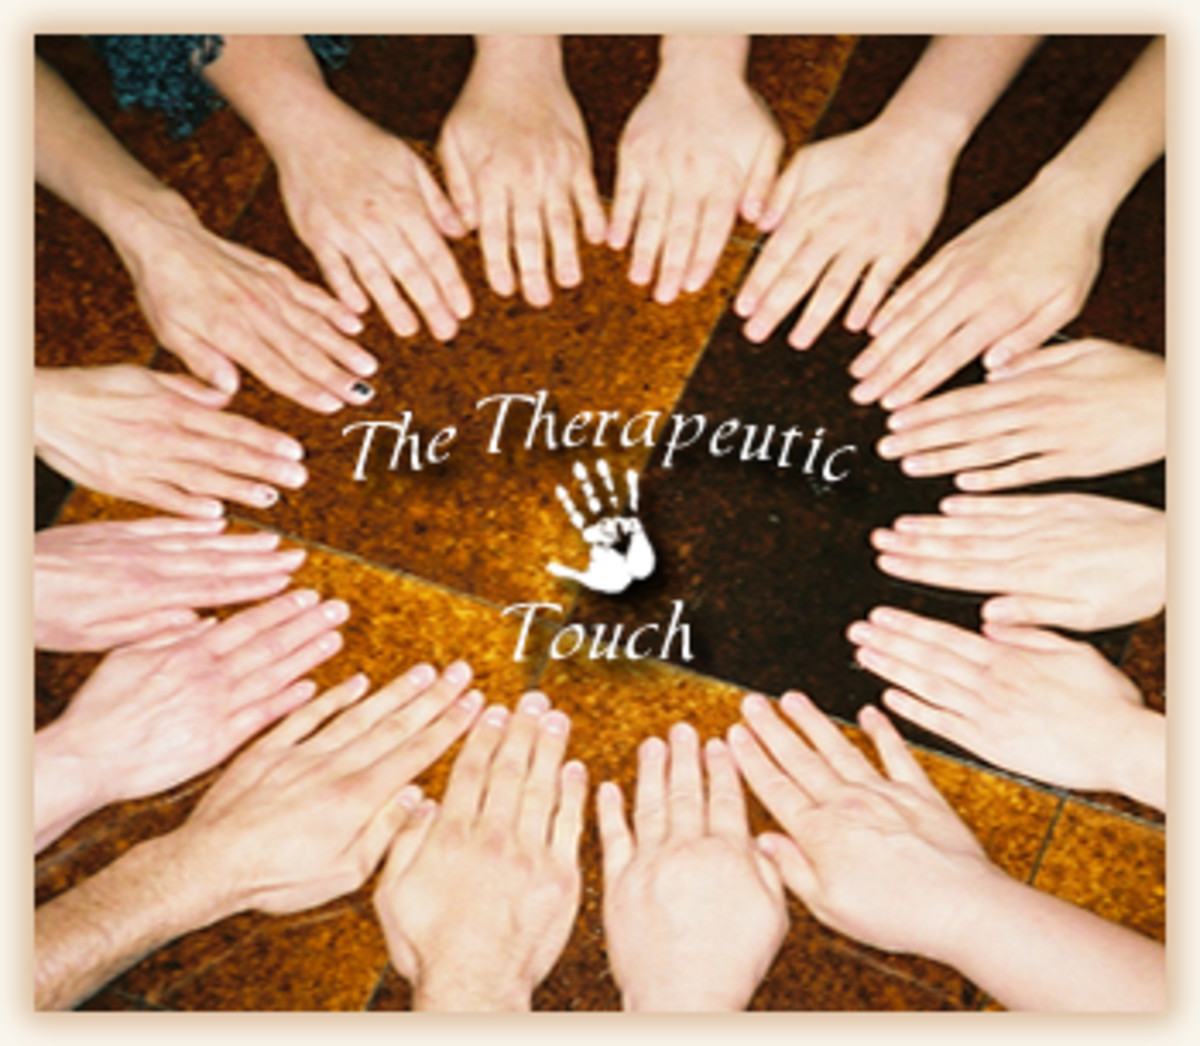 The therapeutic hand: Reiki therapy